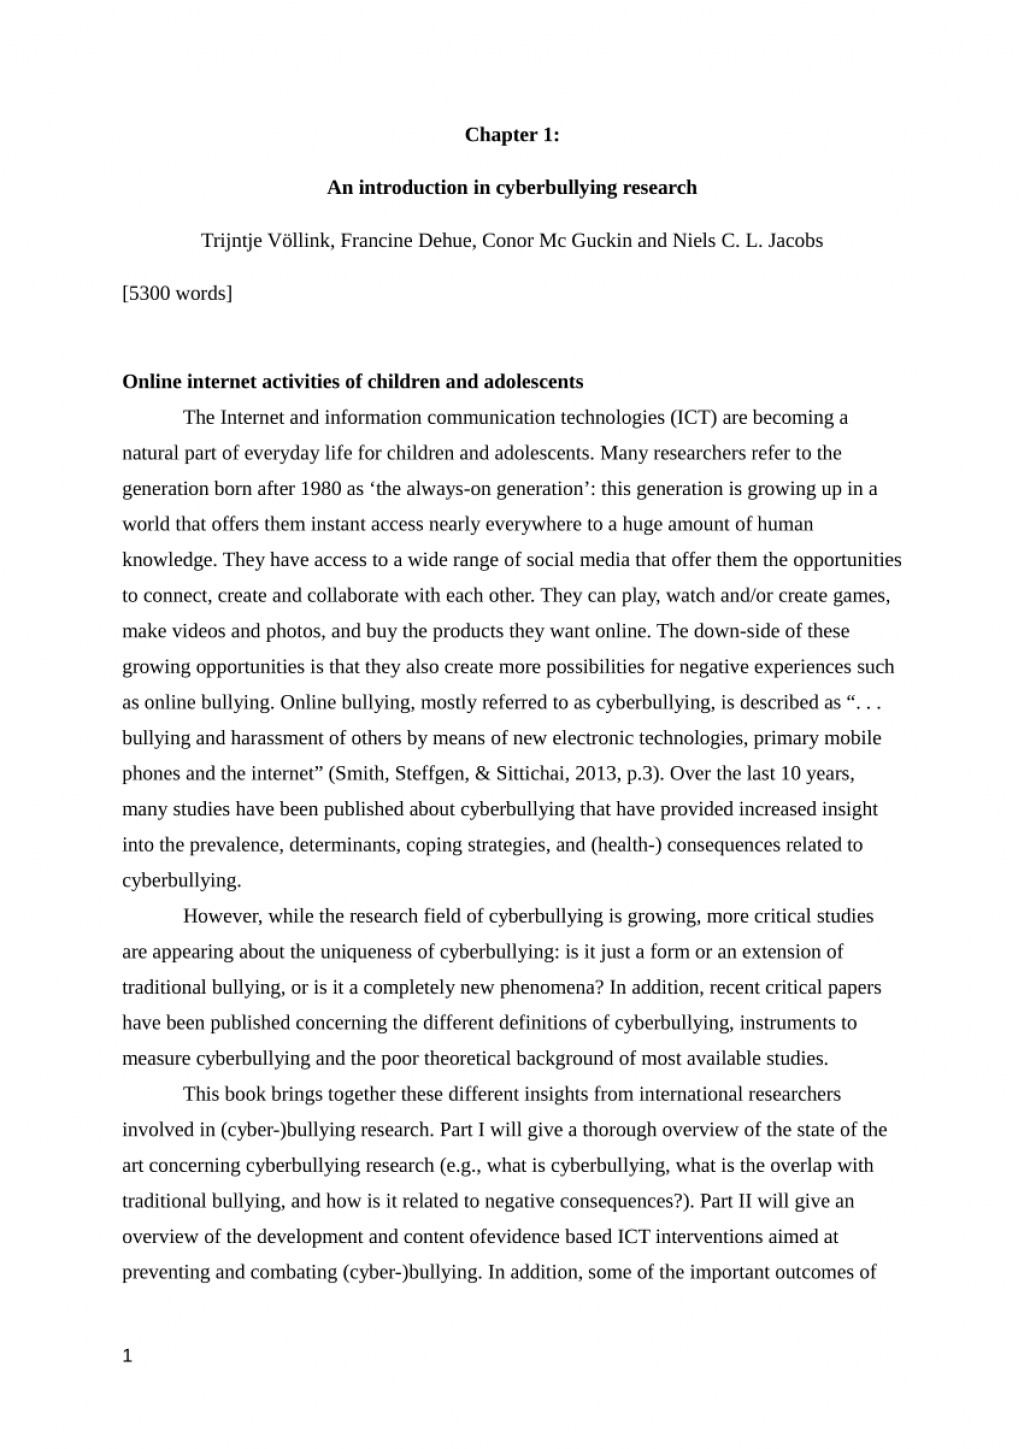 002 Research Paper Largepreview Cyberbullying Stirring Topics Large